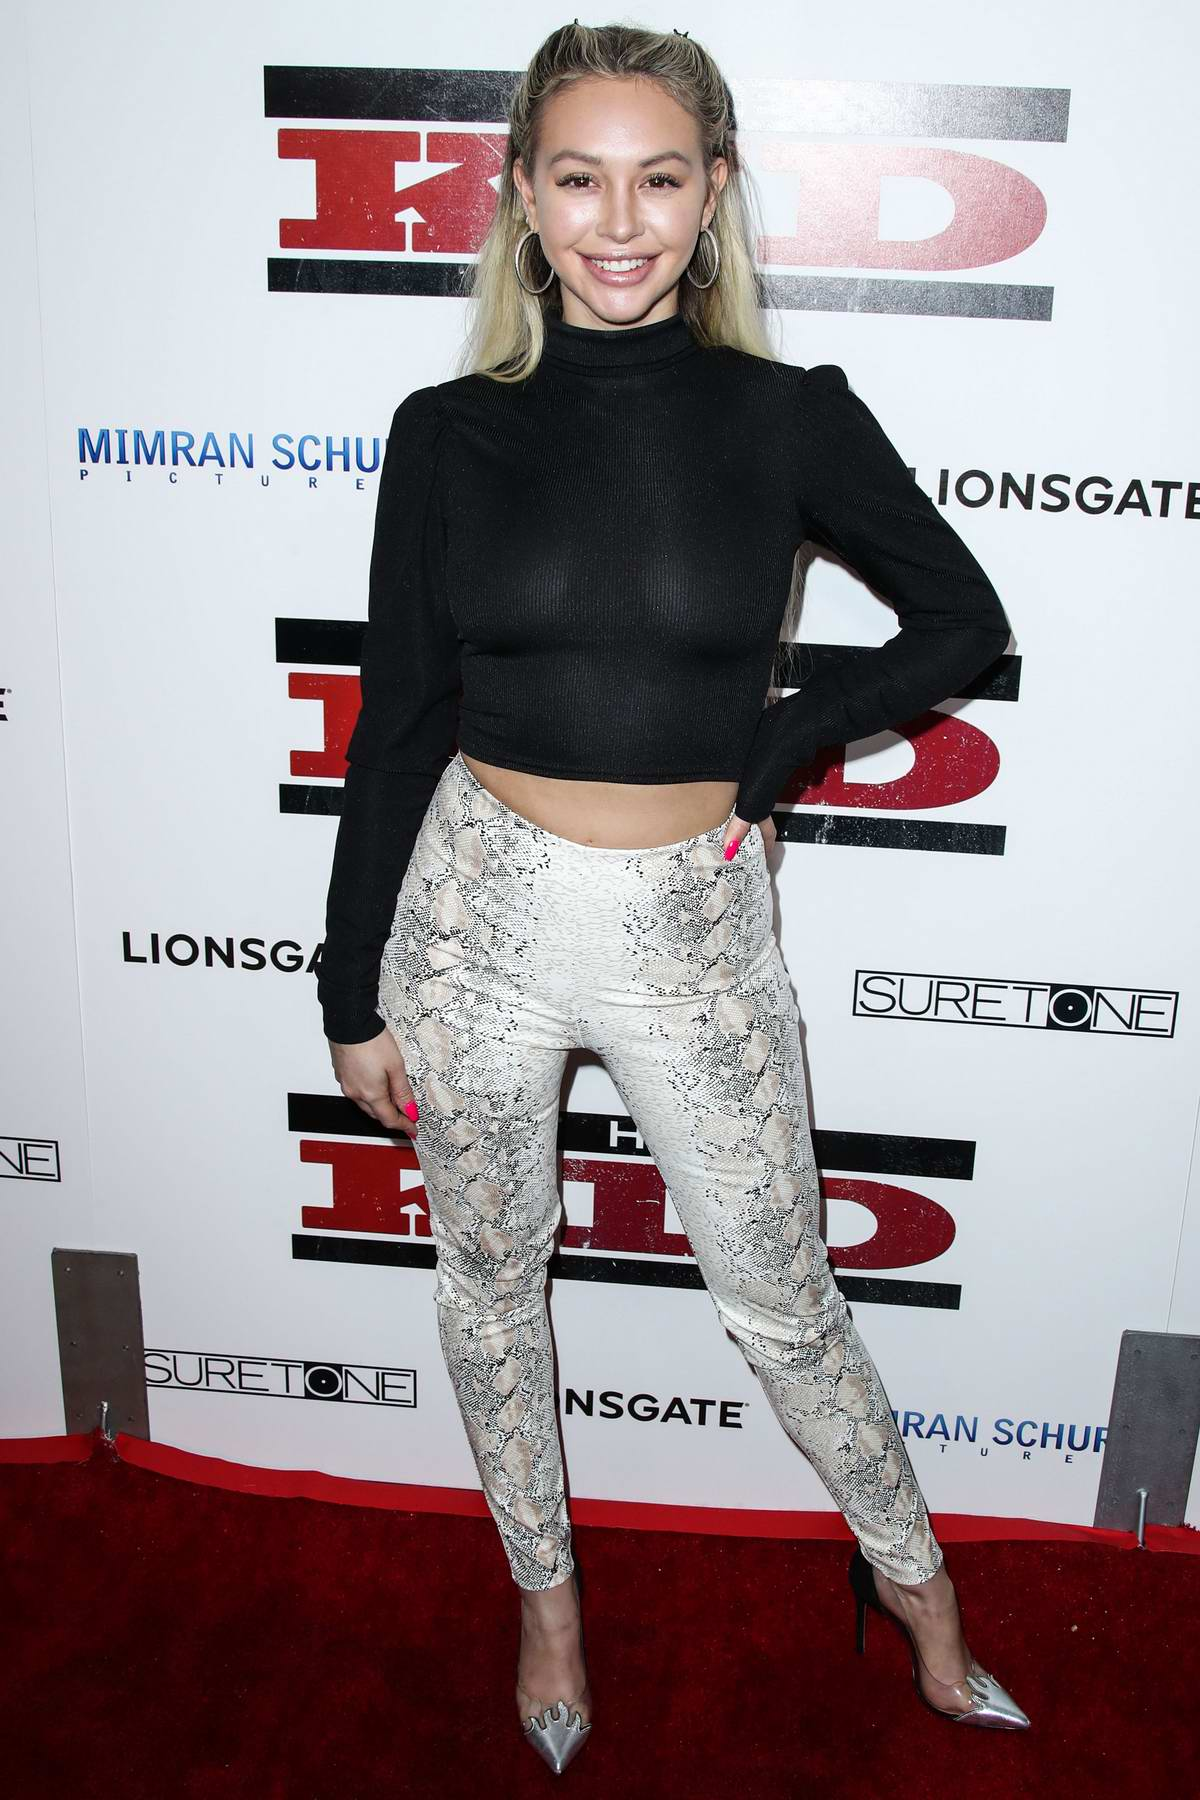 Corinne Olympios attends 'The Kid' Film Premiere at ArcLight Cinemas in Los Angeles